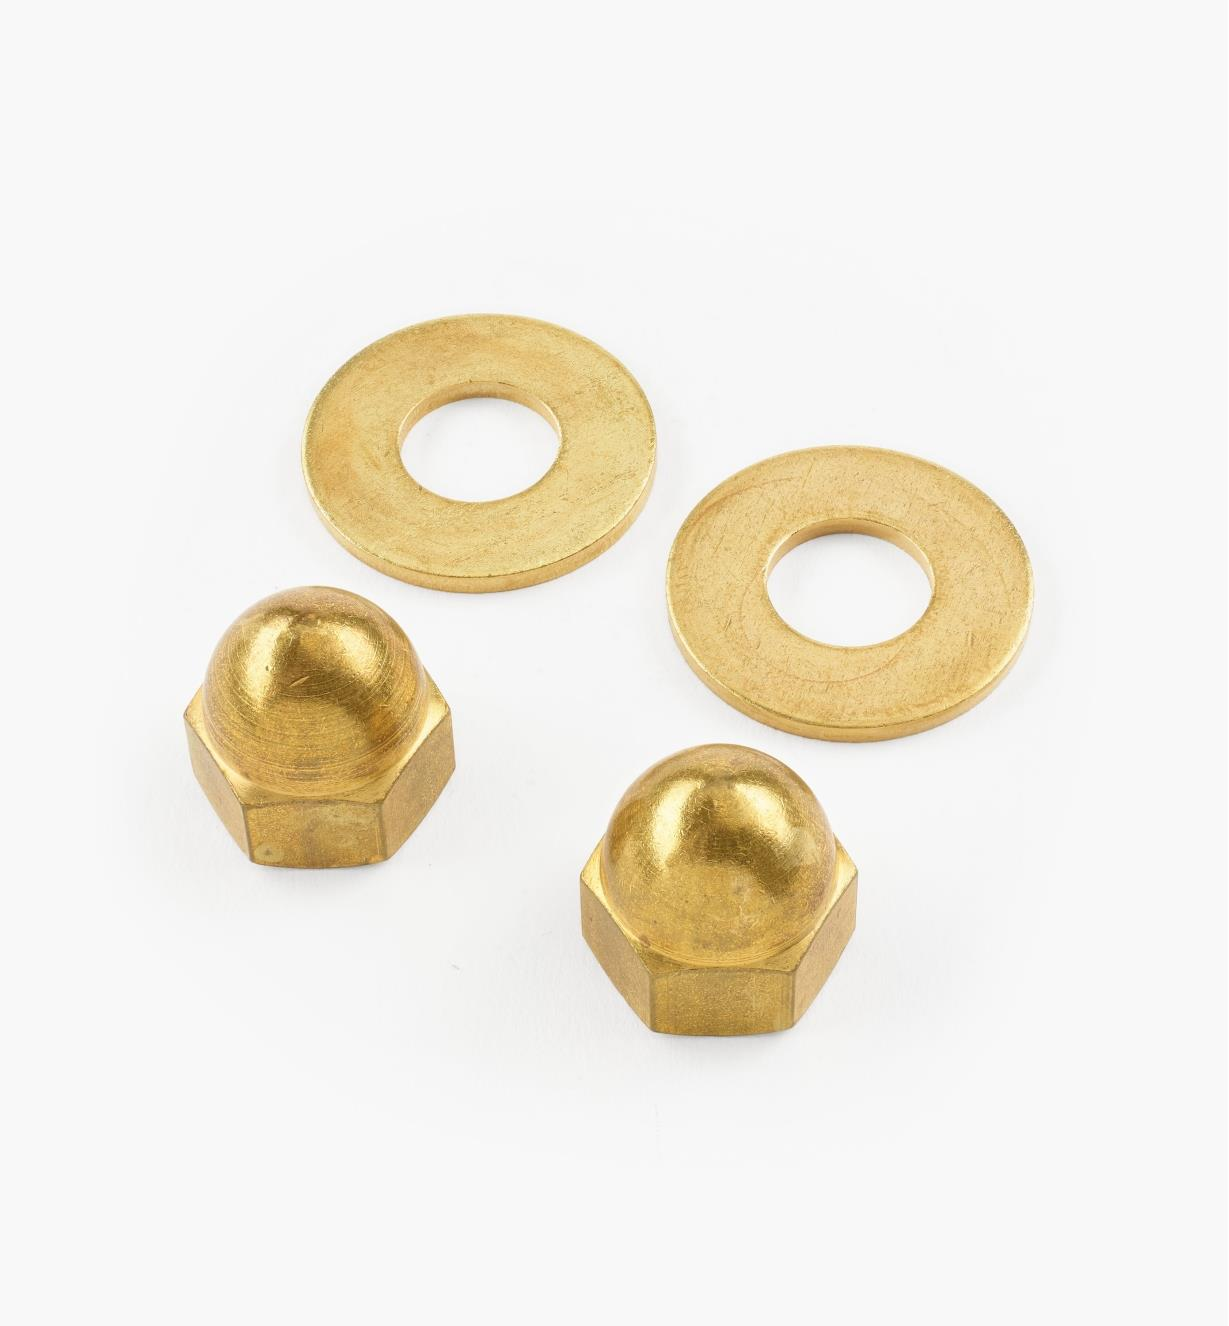 05K4602 - Brass Cap Nuts & Washers, pair